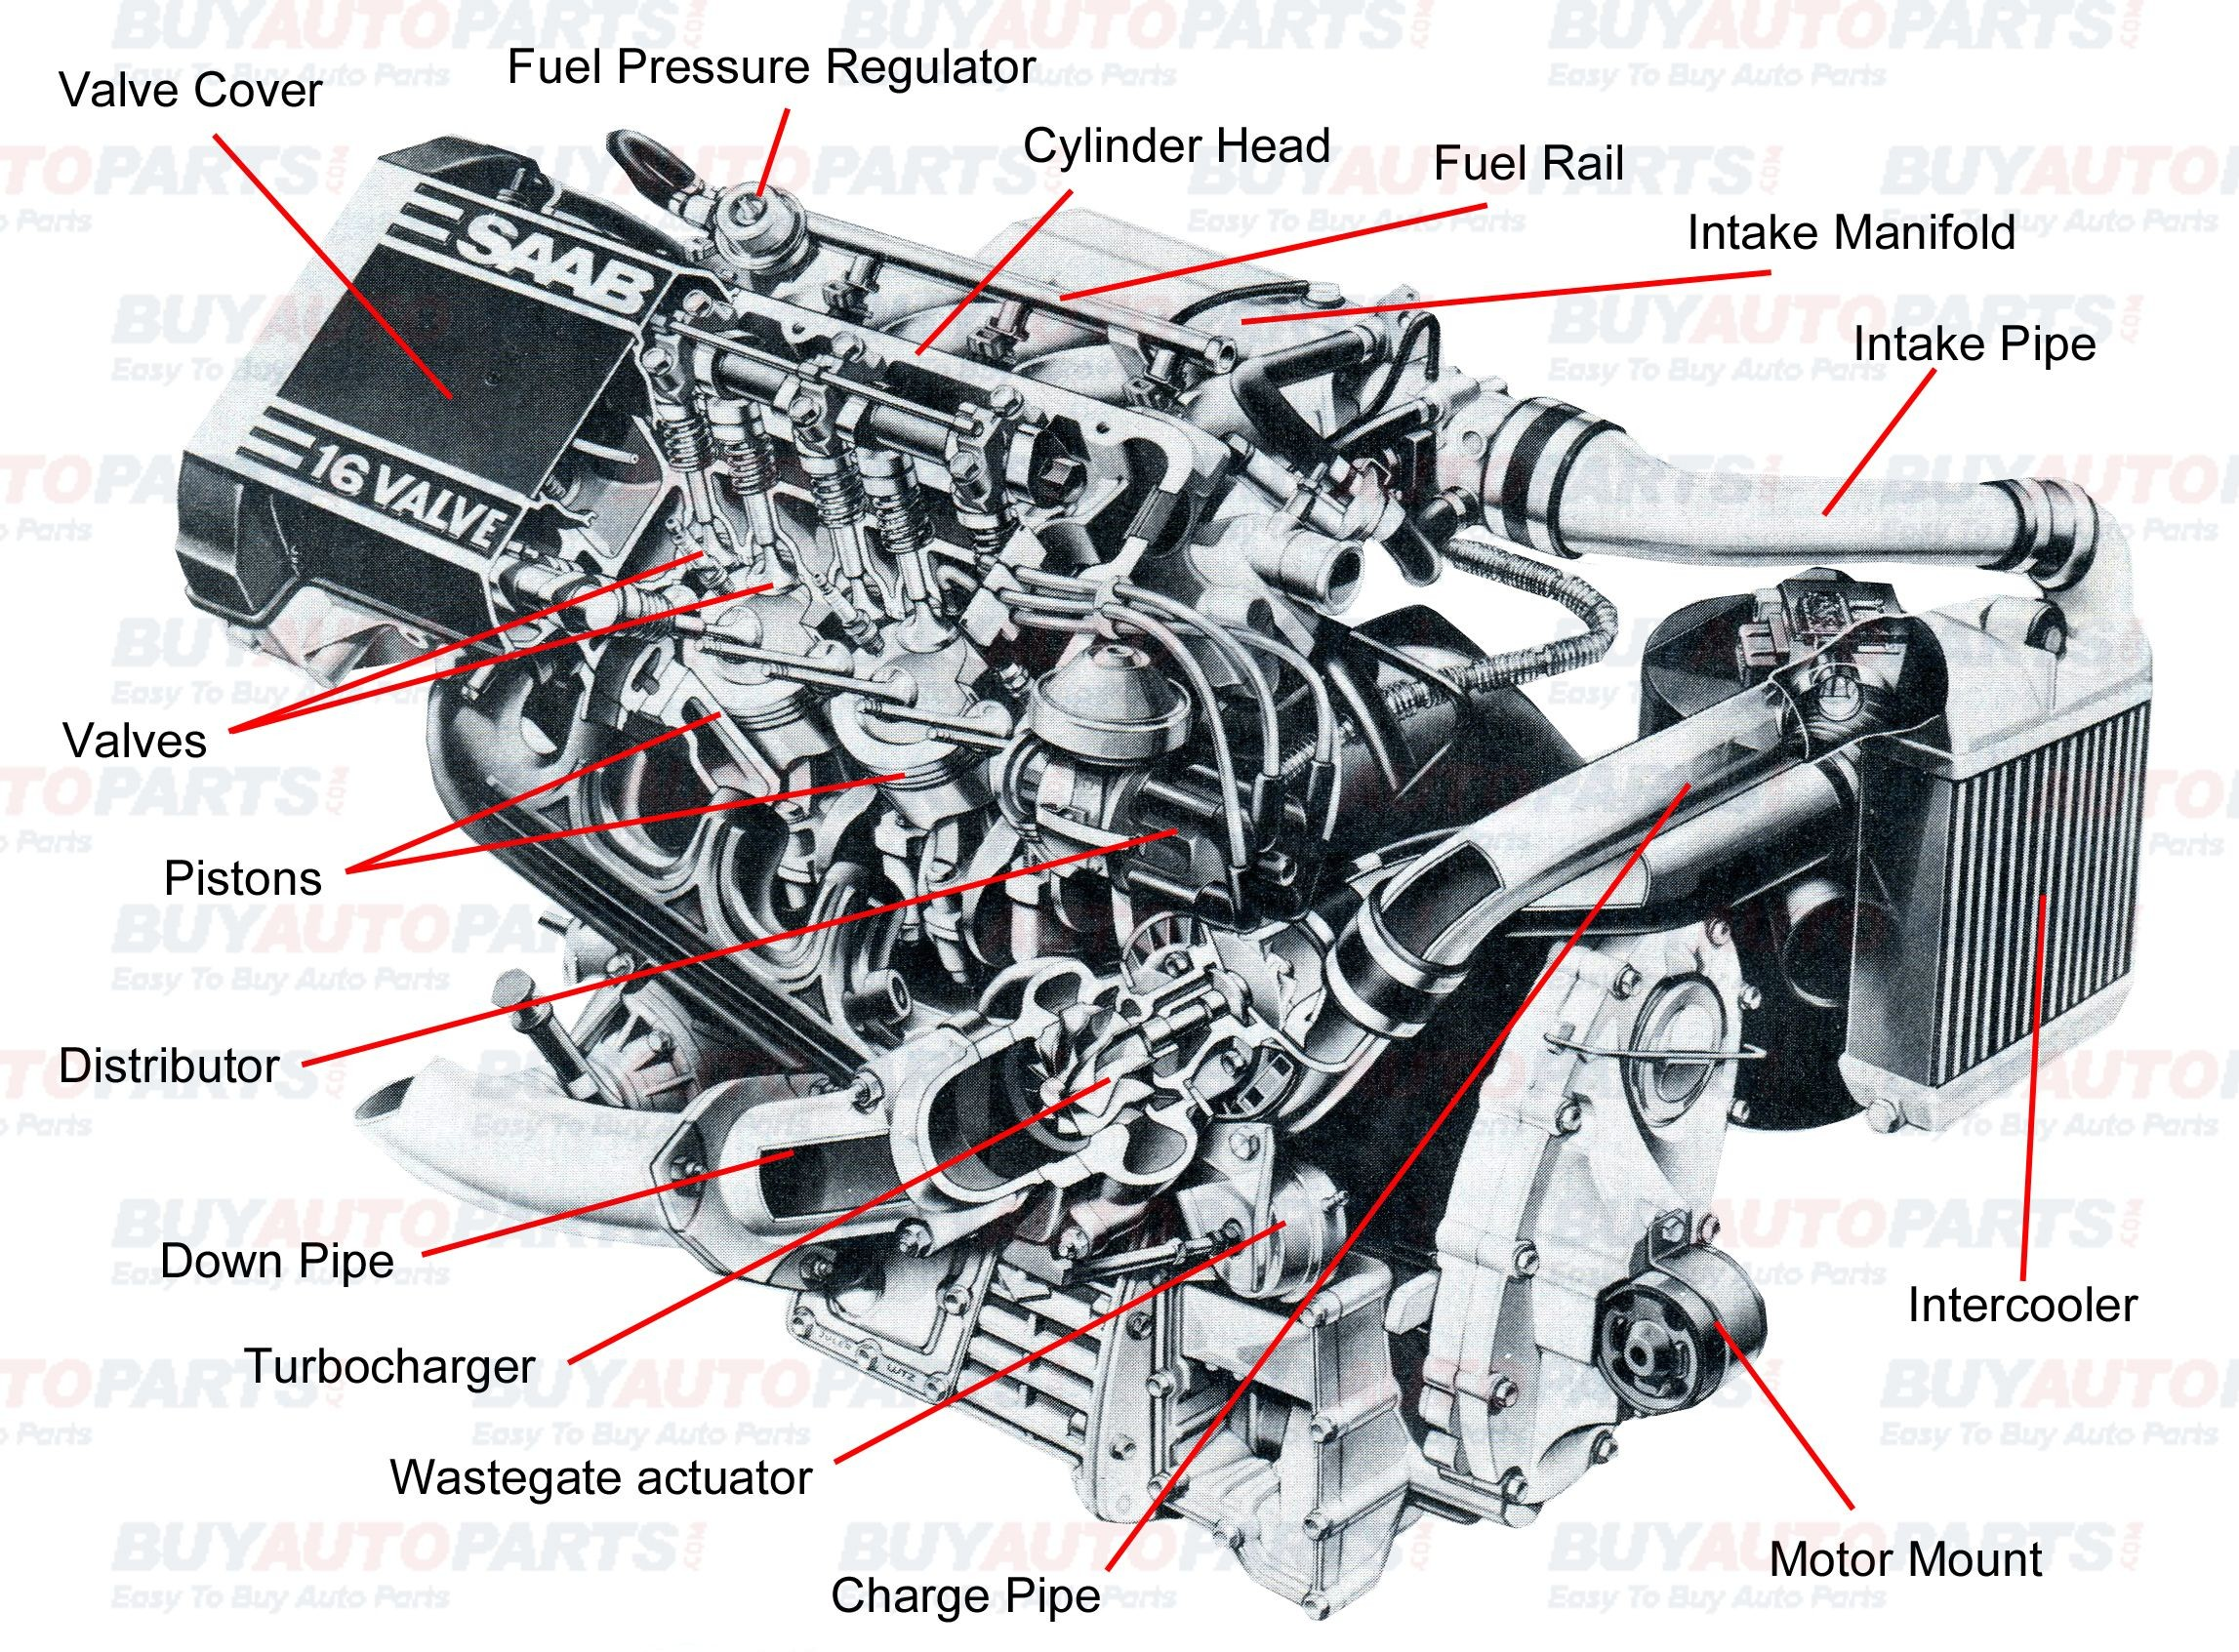 Flat Head Engine Diagram All Internal Bustion Engines Have the Same Basic Ponents the Of Flat Head Engine Diagram